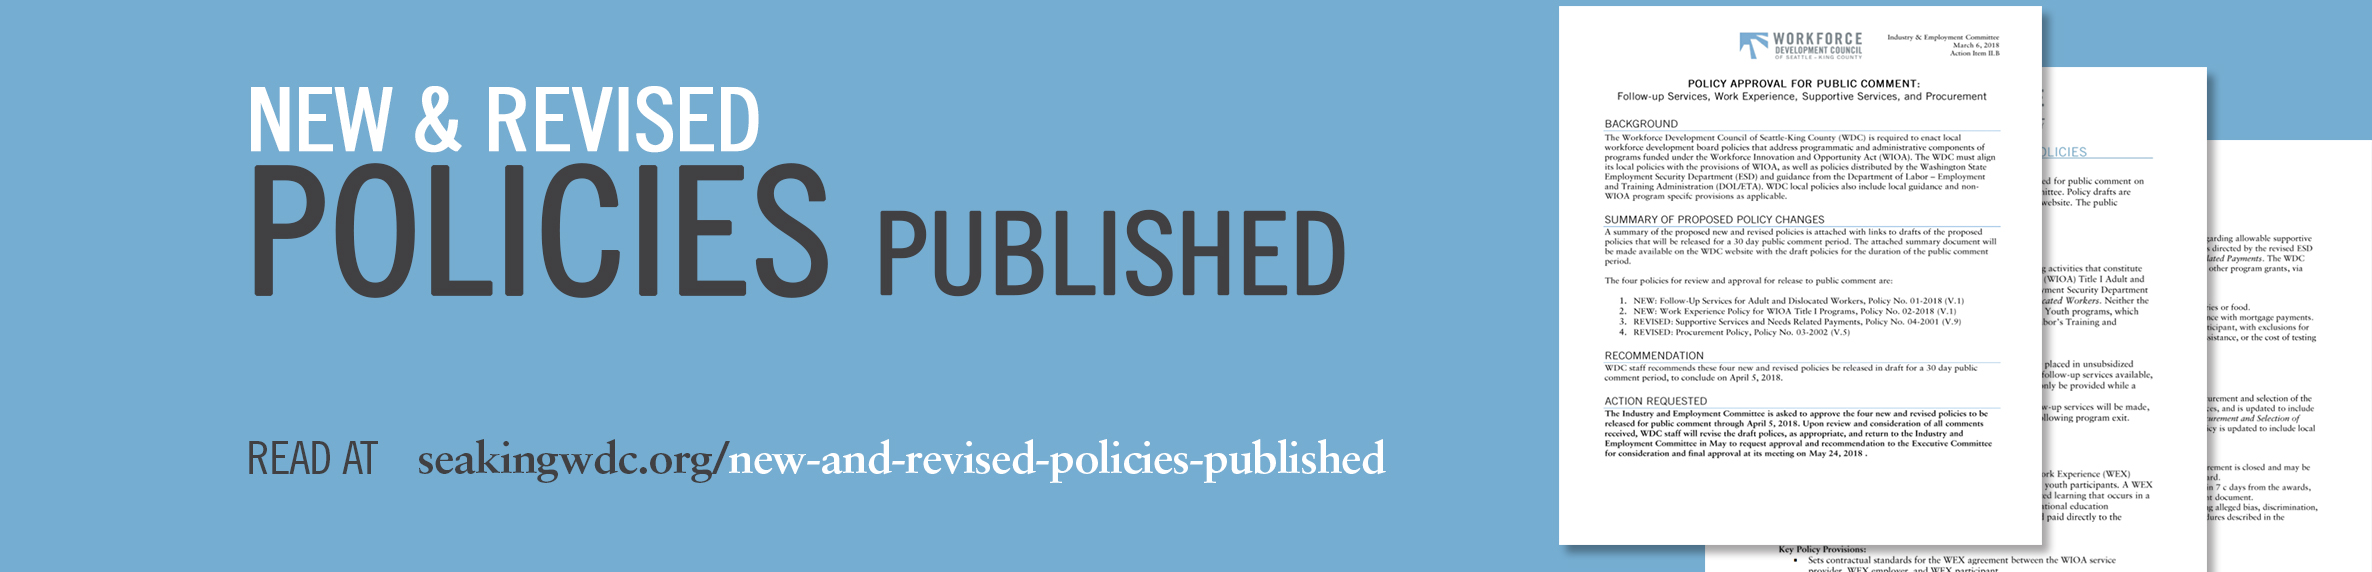 New&RevisedPolicies-Published.jpg